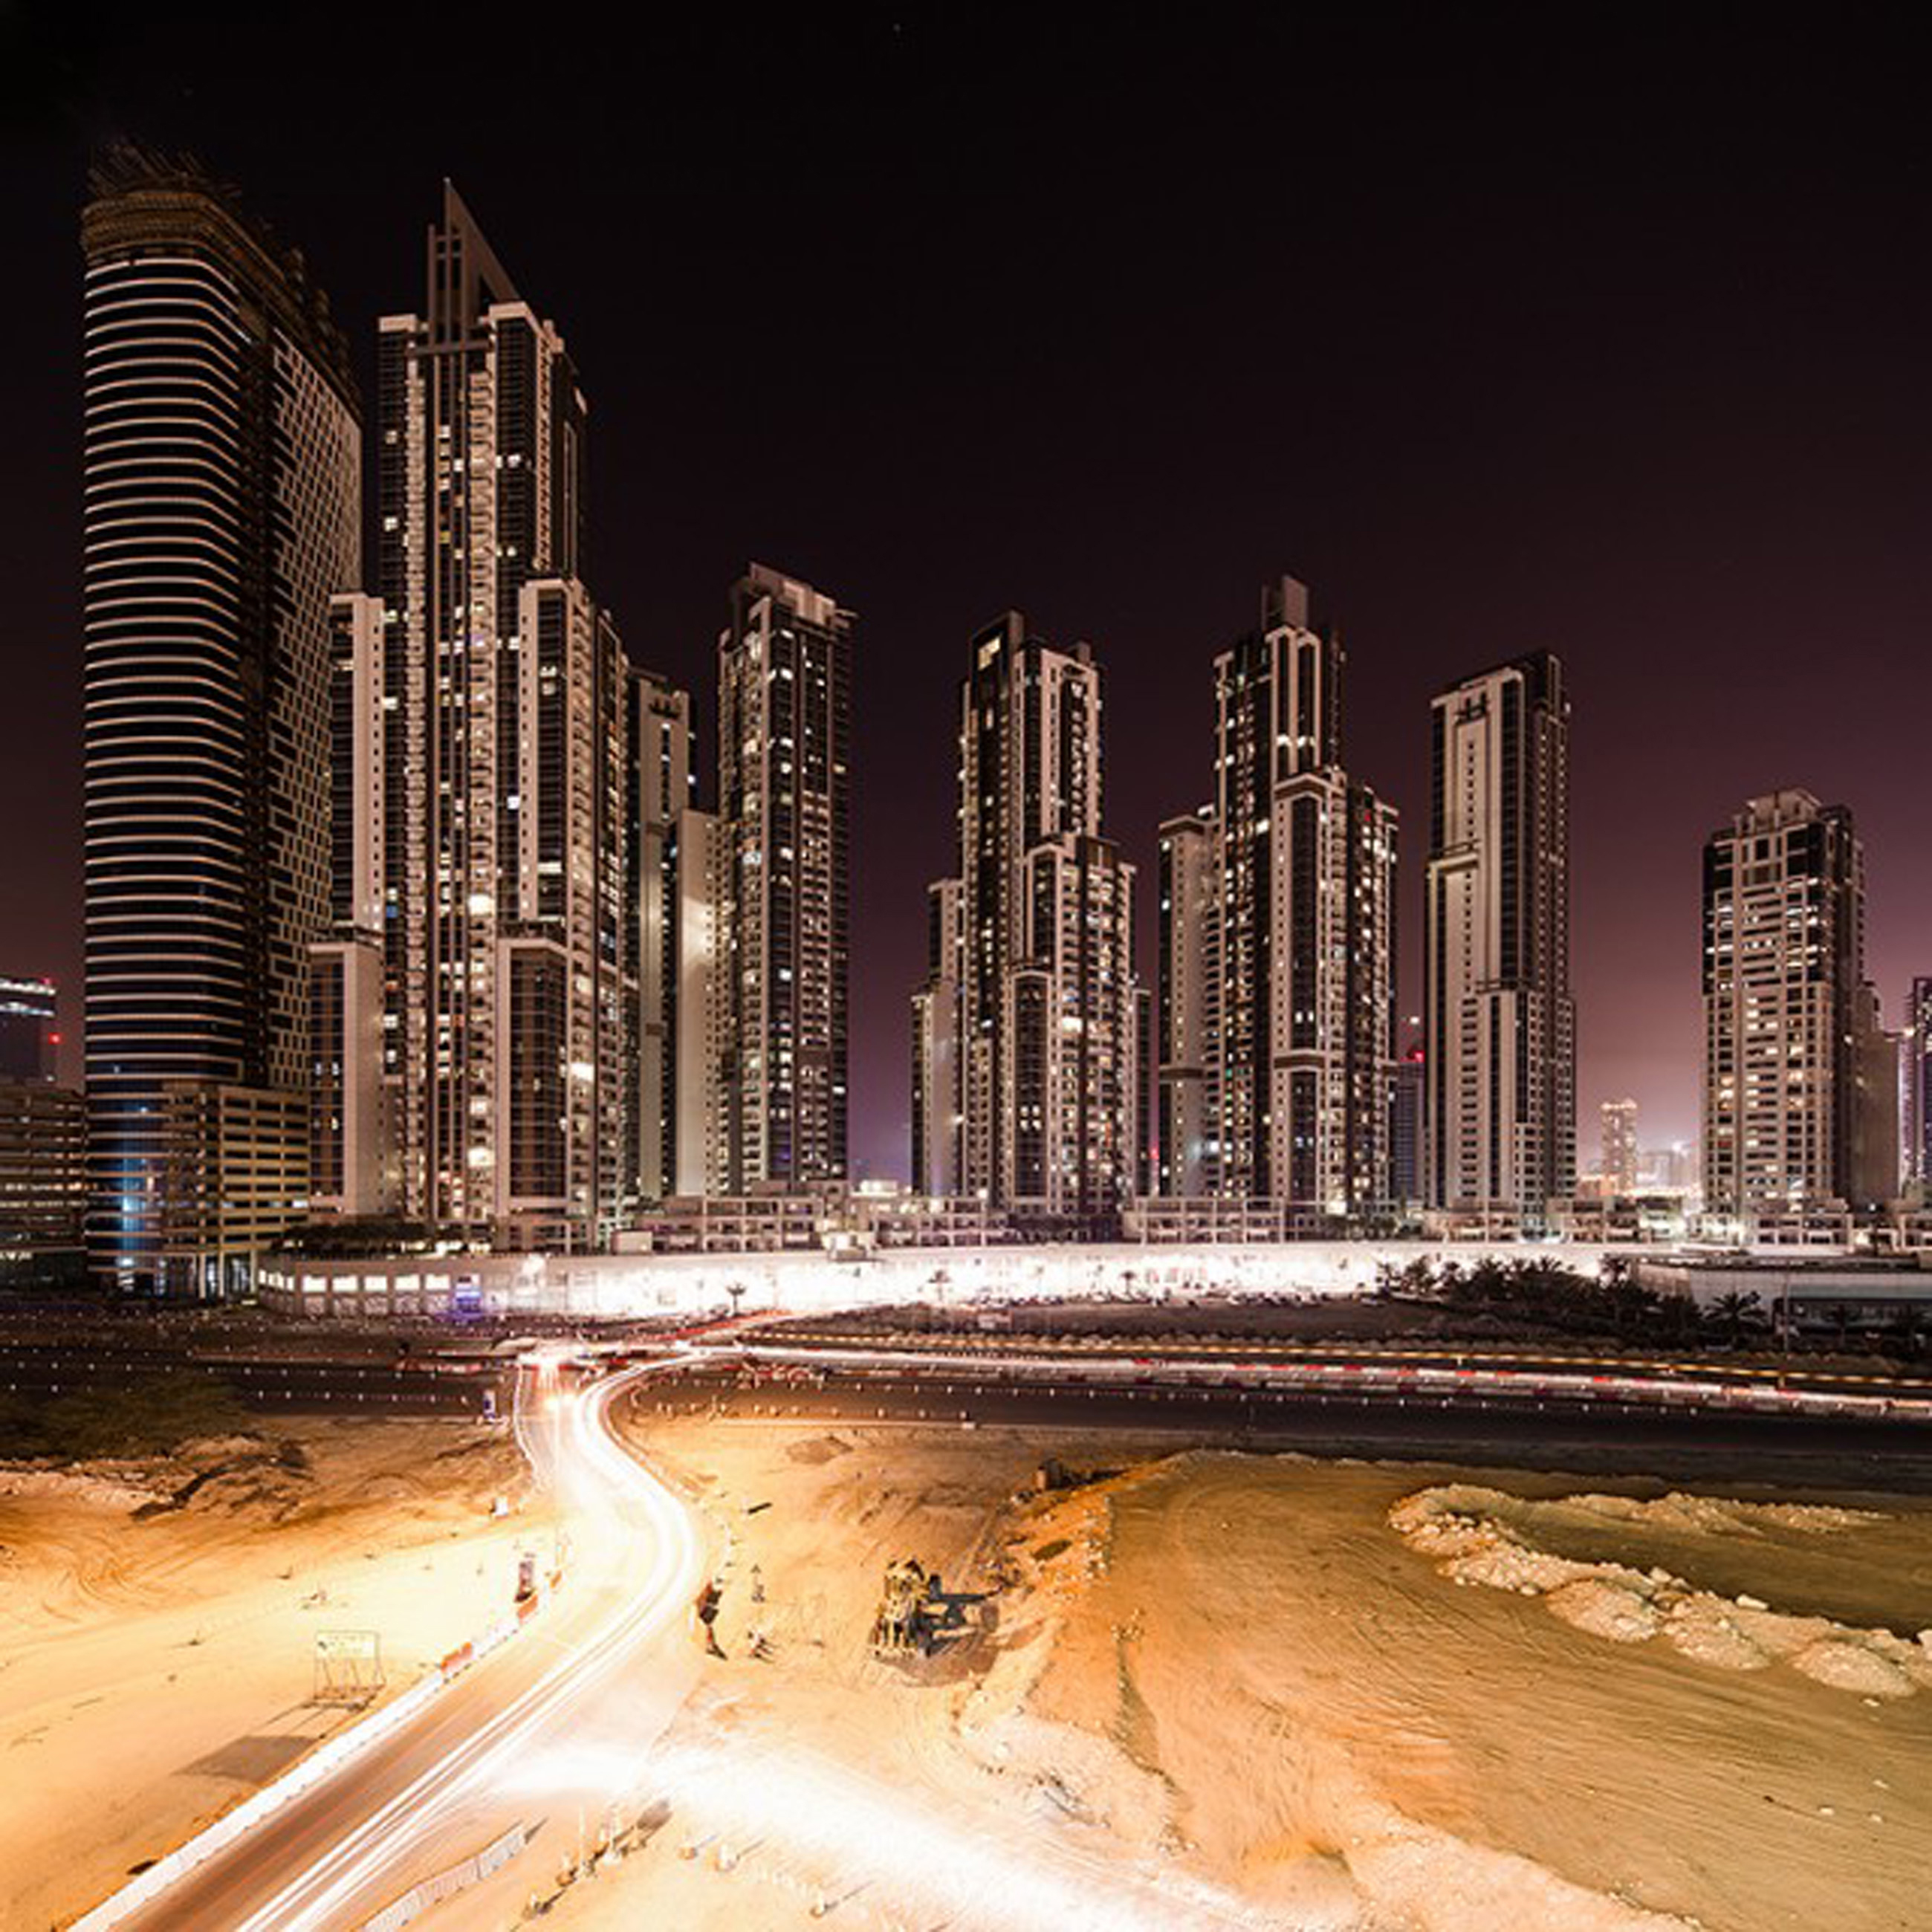 Apartments Scape Listed In Spectacular Cape In Dubai City (Image 42 of 45)